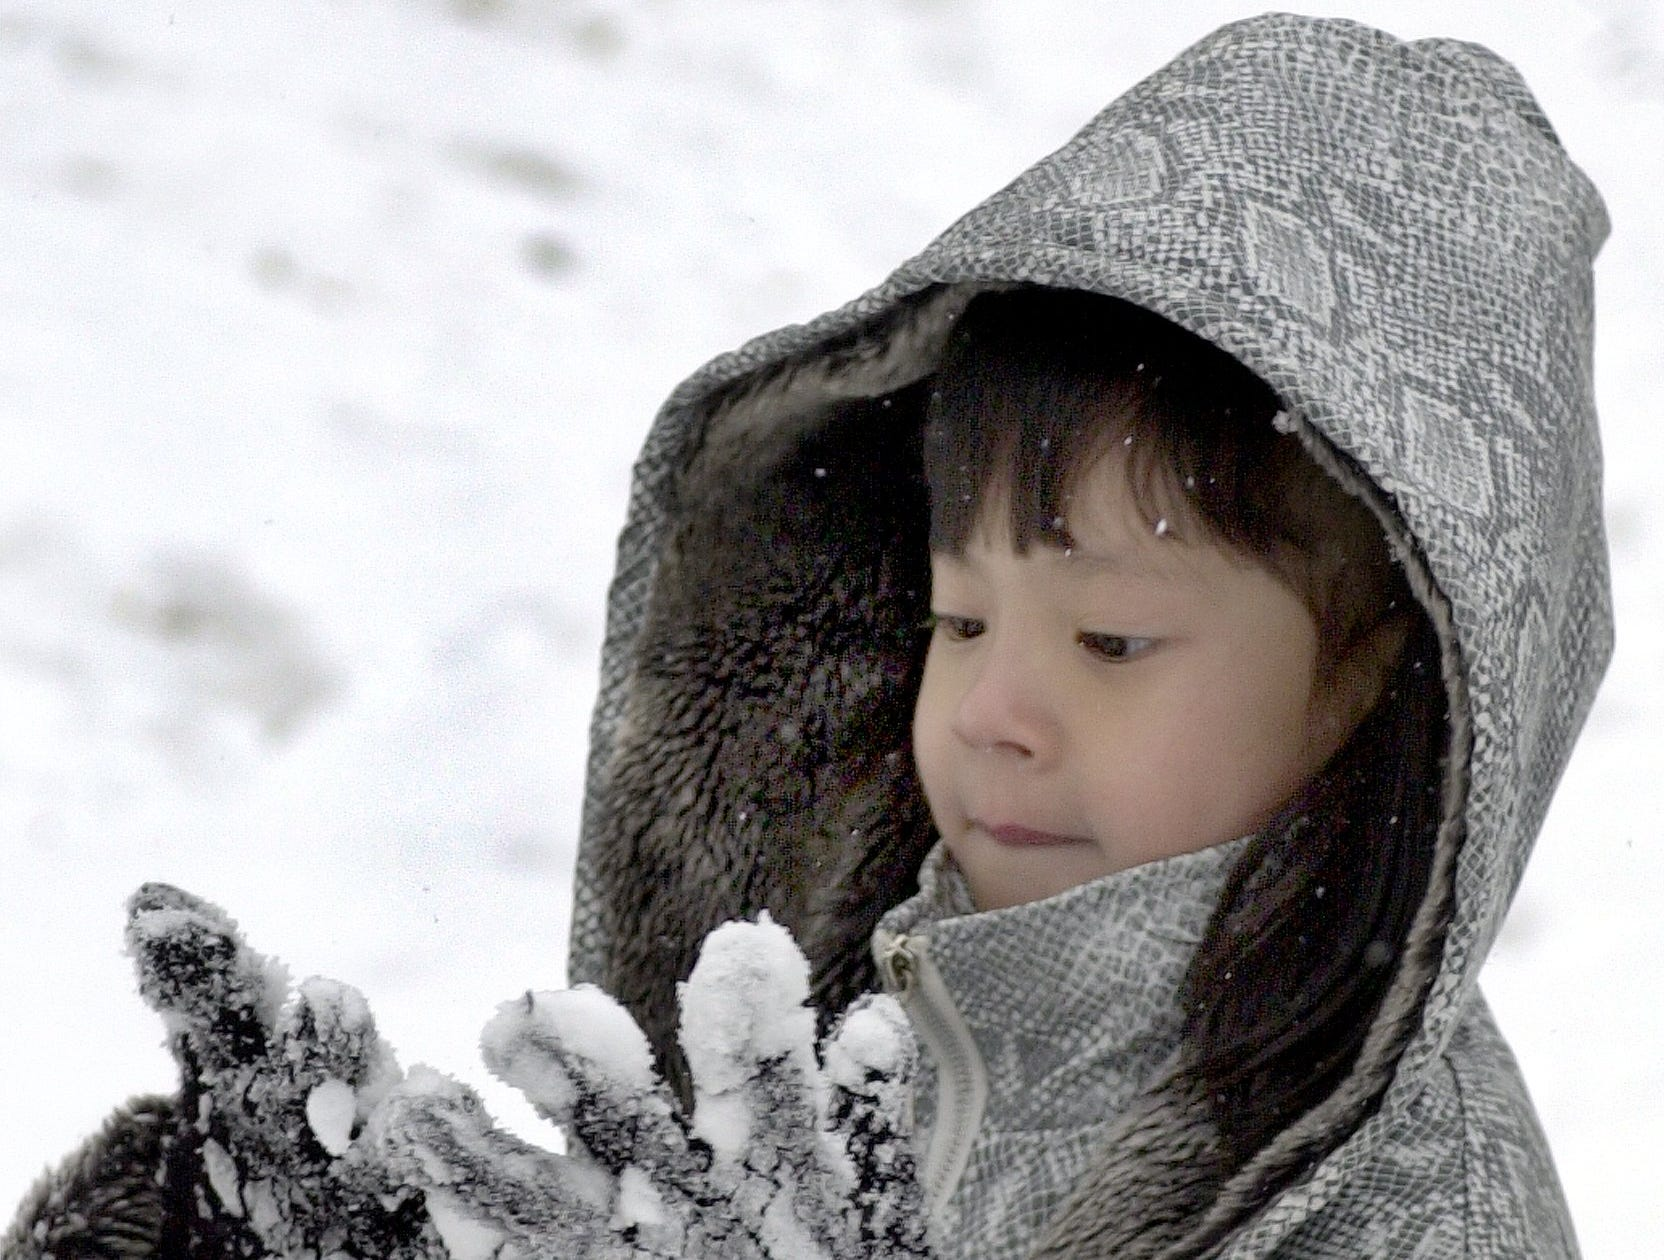 Kayle Doan, 7 checks her snow encrusted gloves while playing in the snow with her brother and uncle l/3/02 near palmetto Exposition hall.